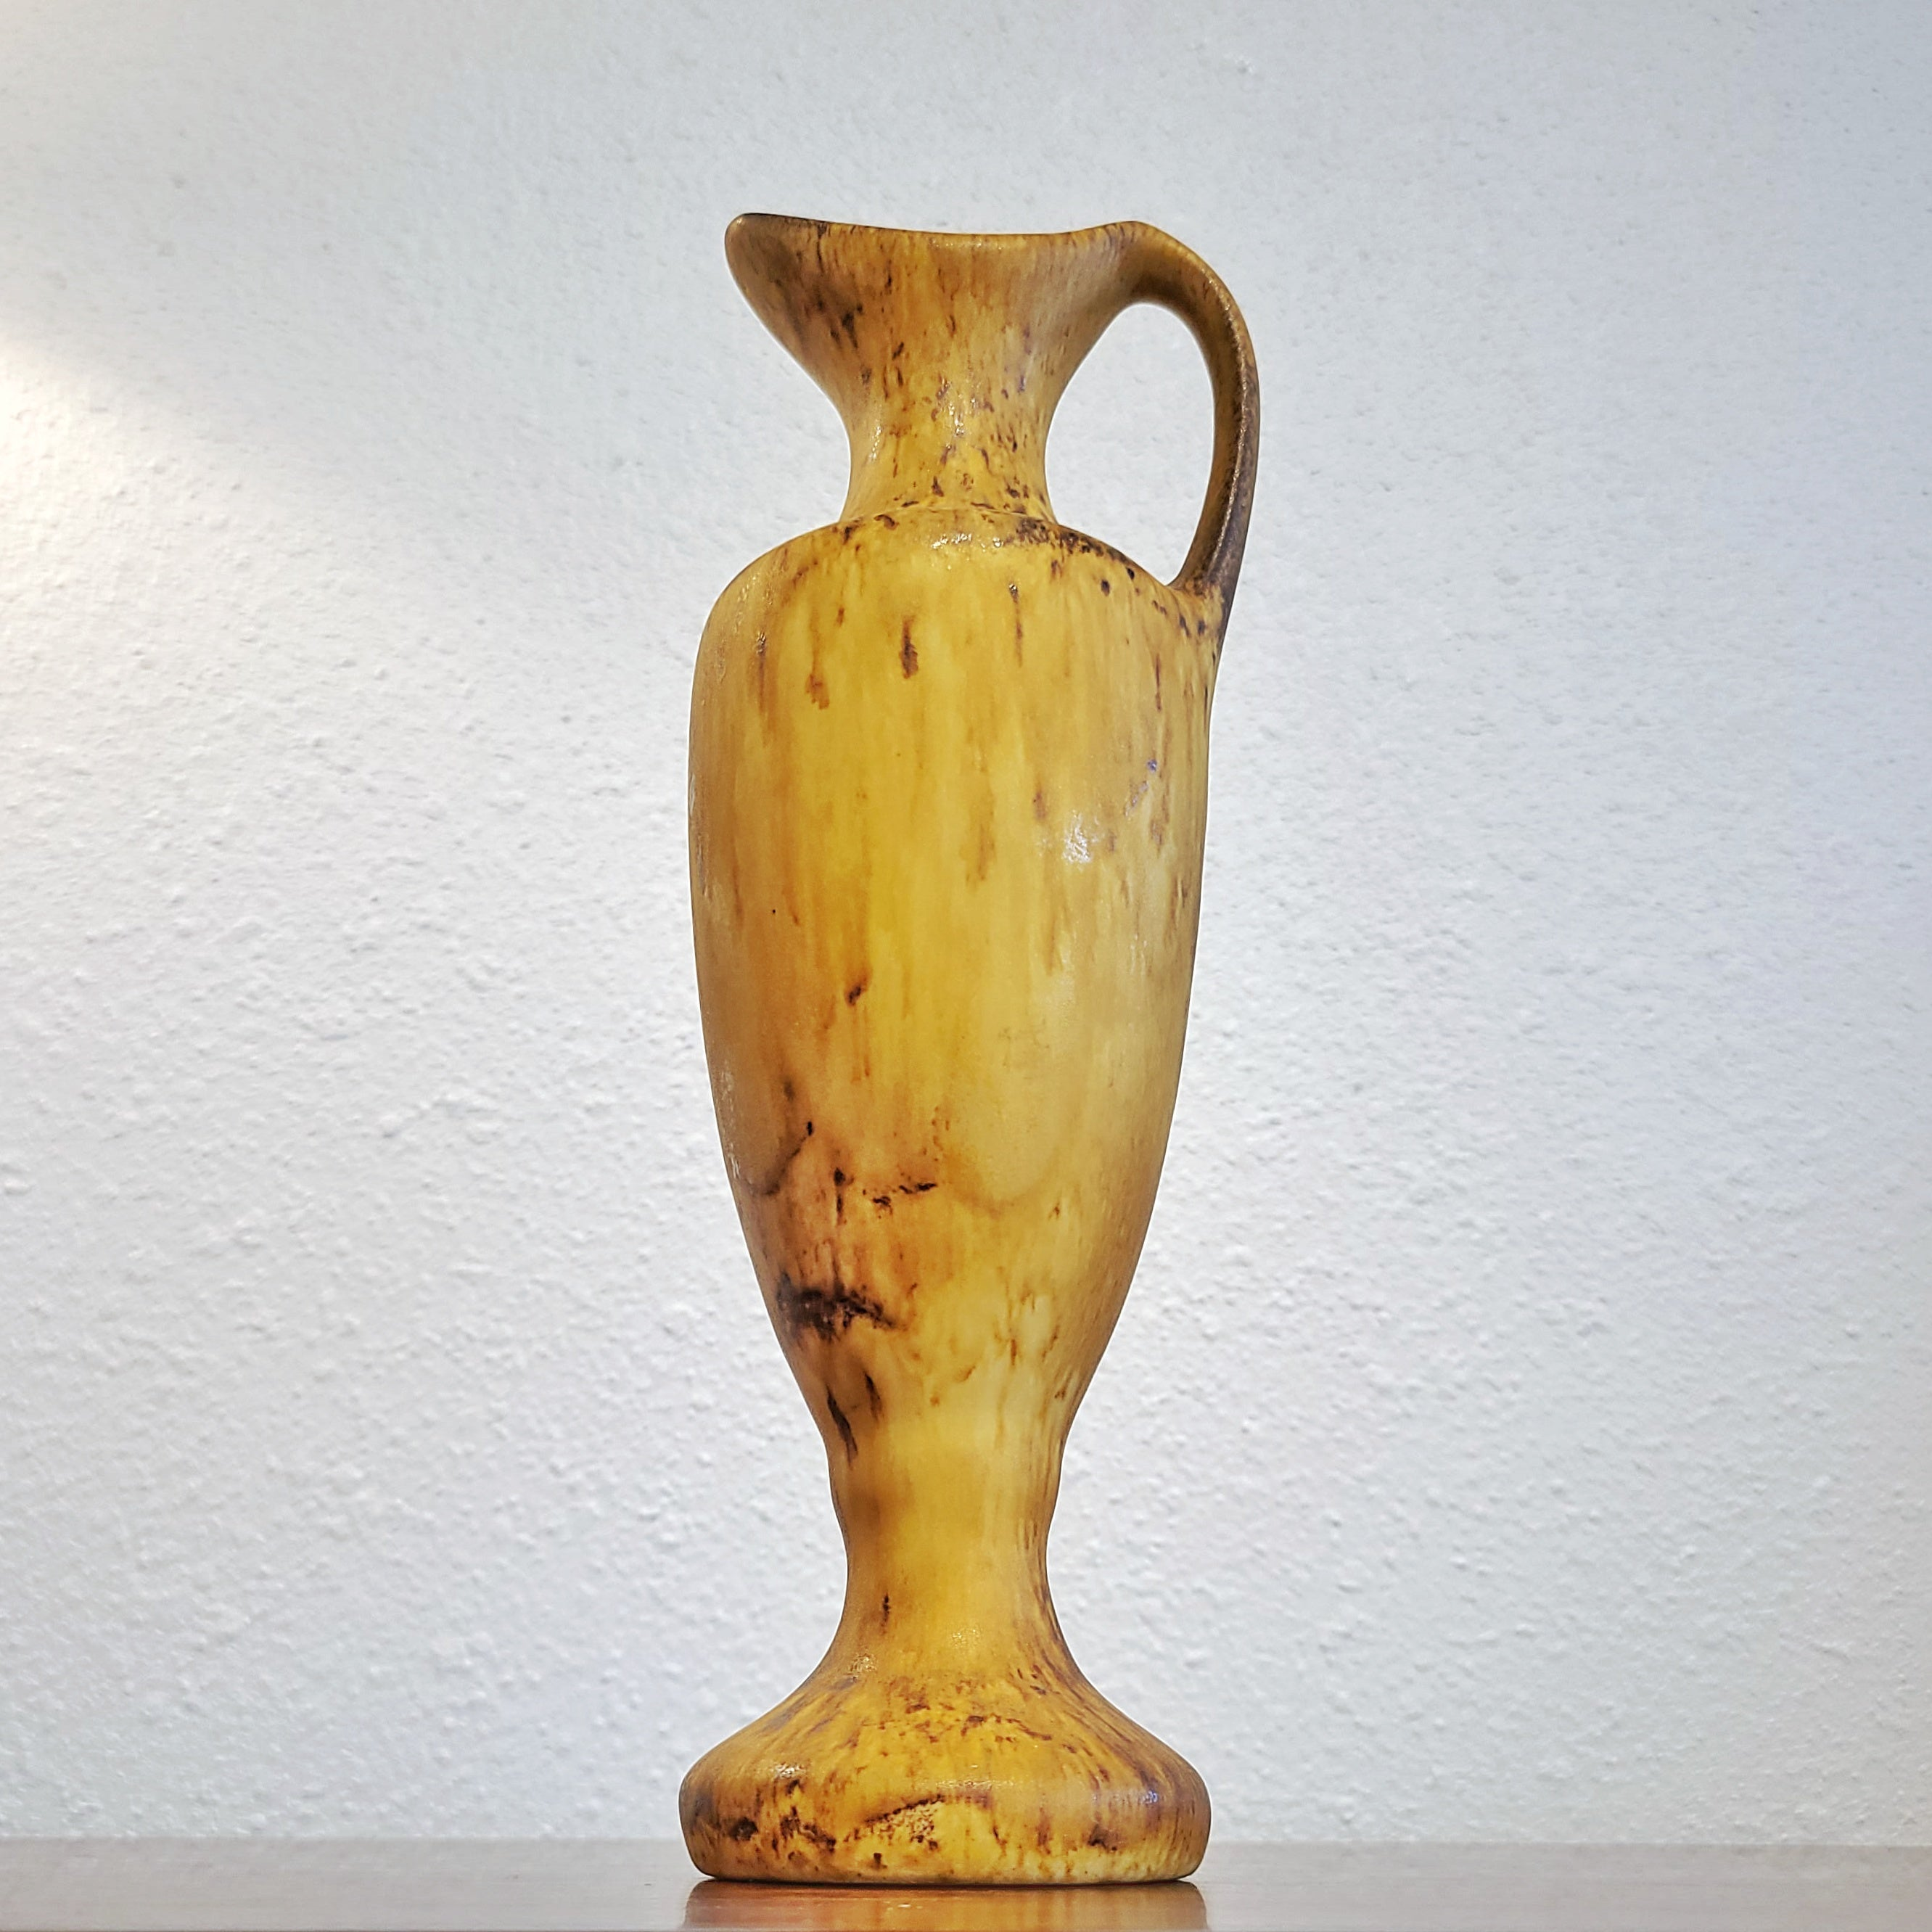 EARLY MAIGONIS DAGA EWER VASE